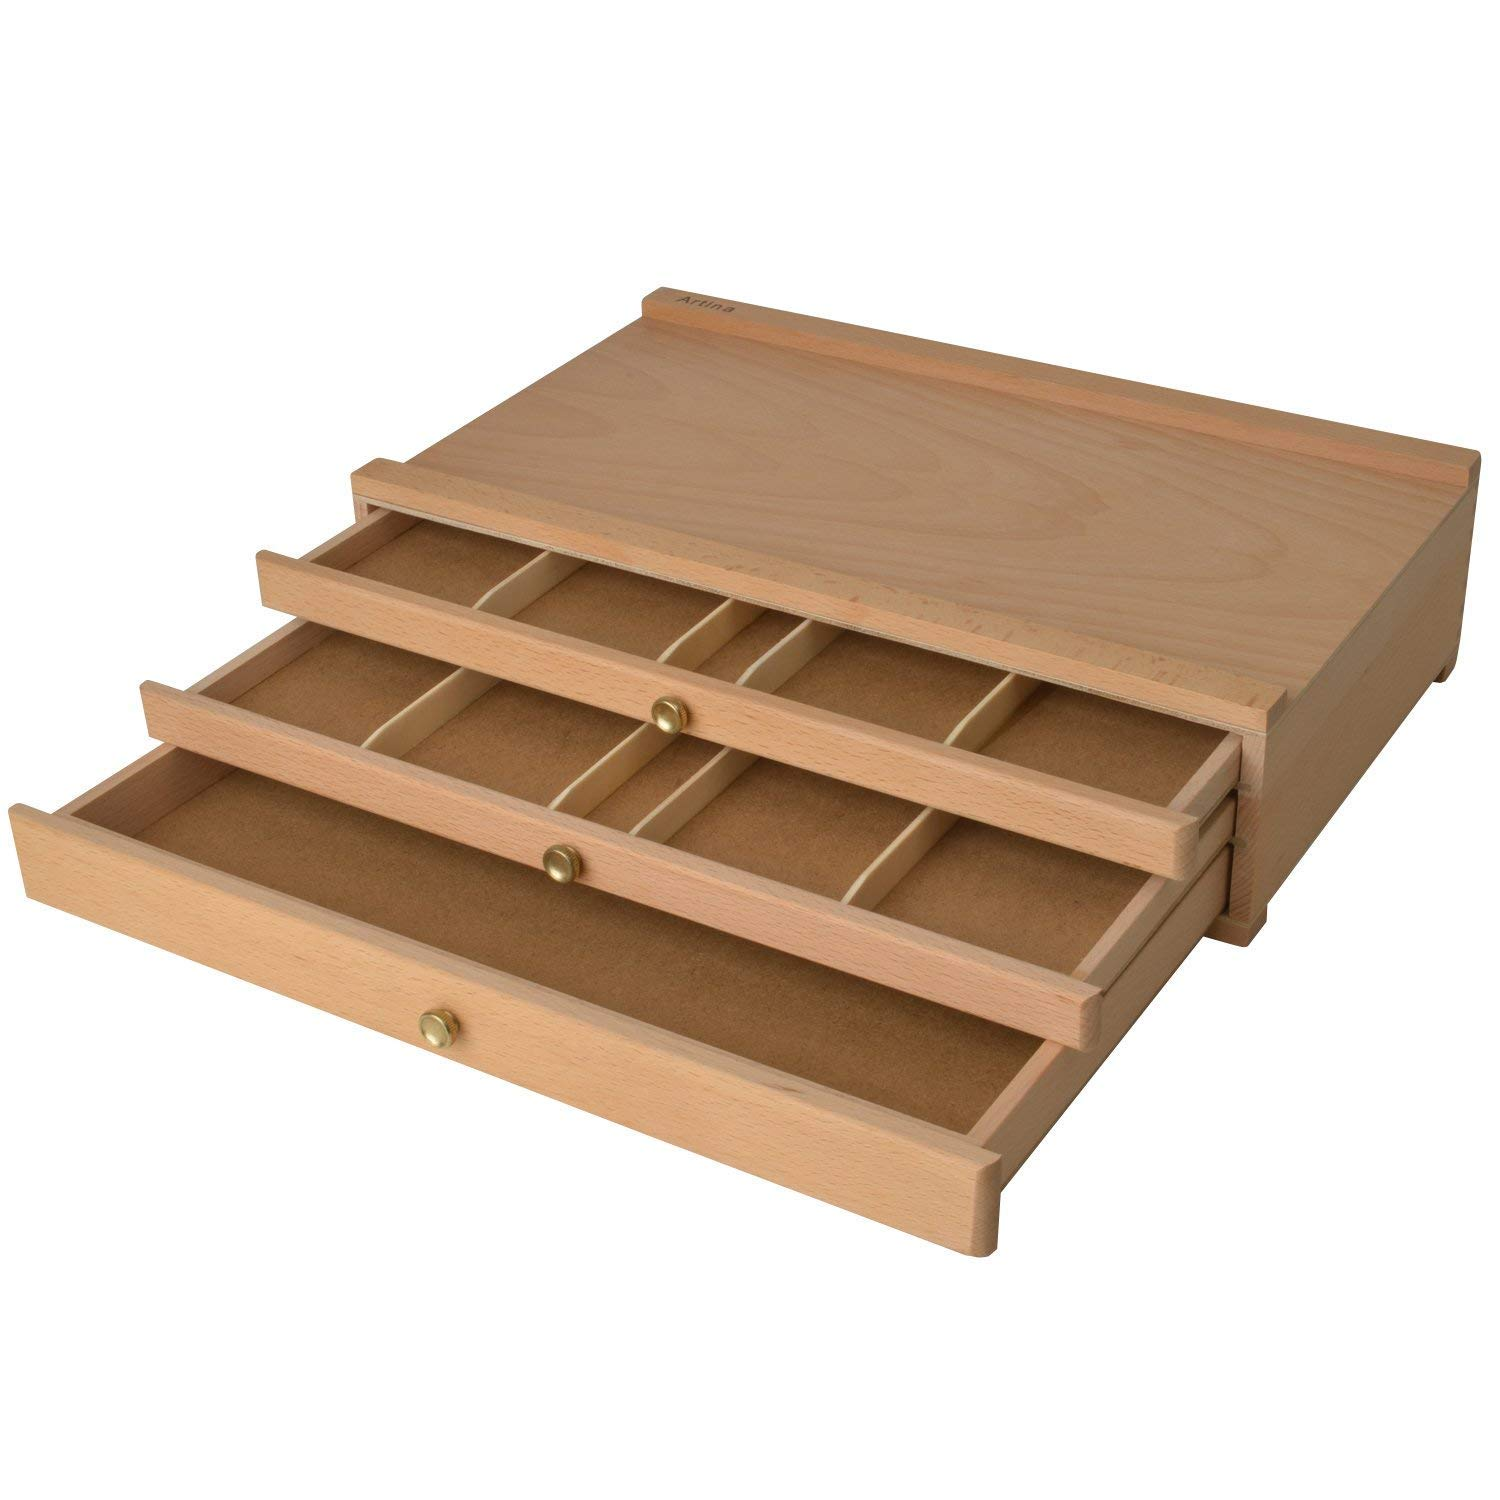 Dier pratico accessorio in legno pennello Art box Troyes Storage box dell' artista vernice Art supply petto